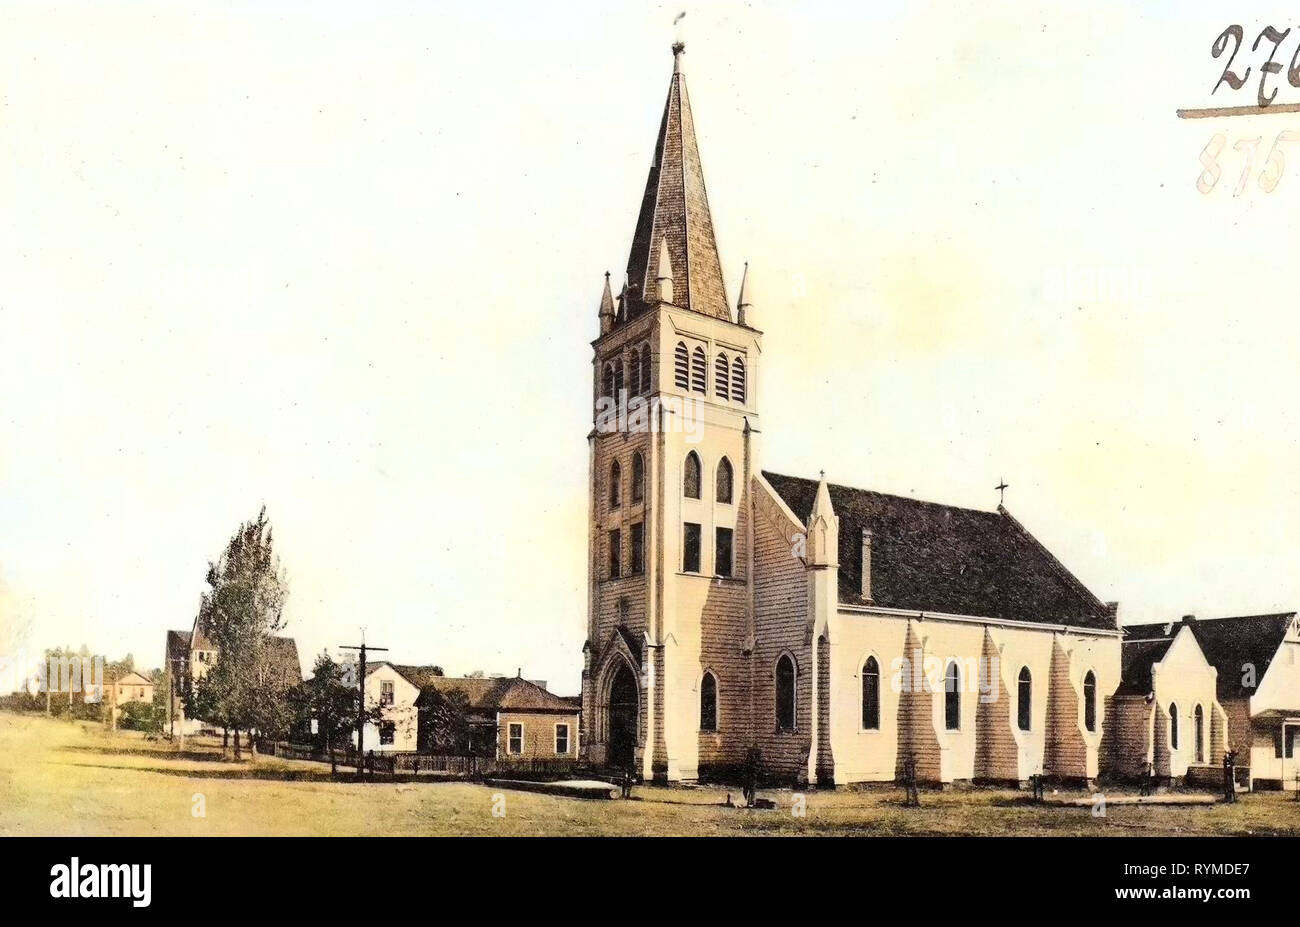 Churches in the Roman Catholic Diocese of Sacramento, Buildings in Redding, California, 1906, Redding, Cal., Catholic Church', United States of America - Stock Image